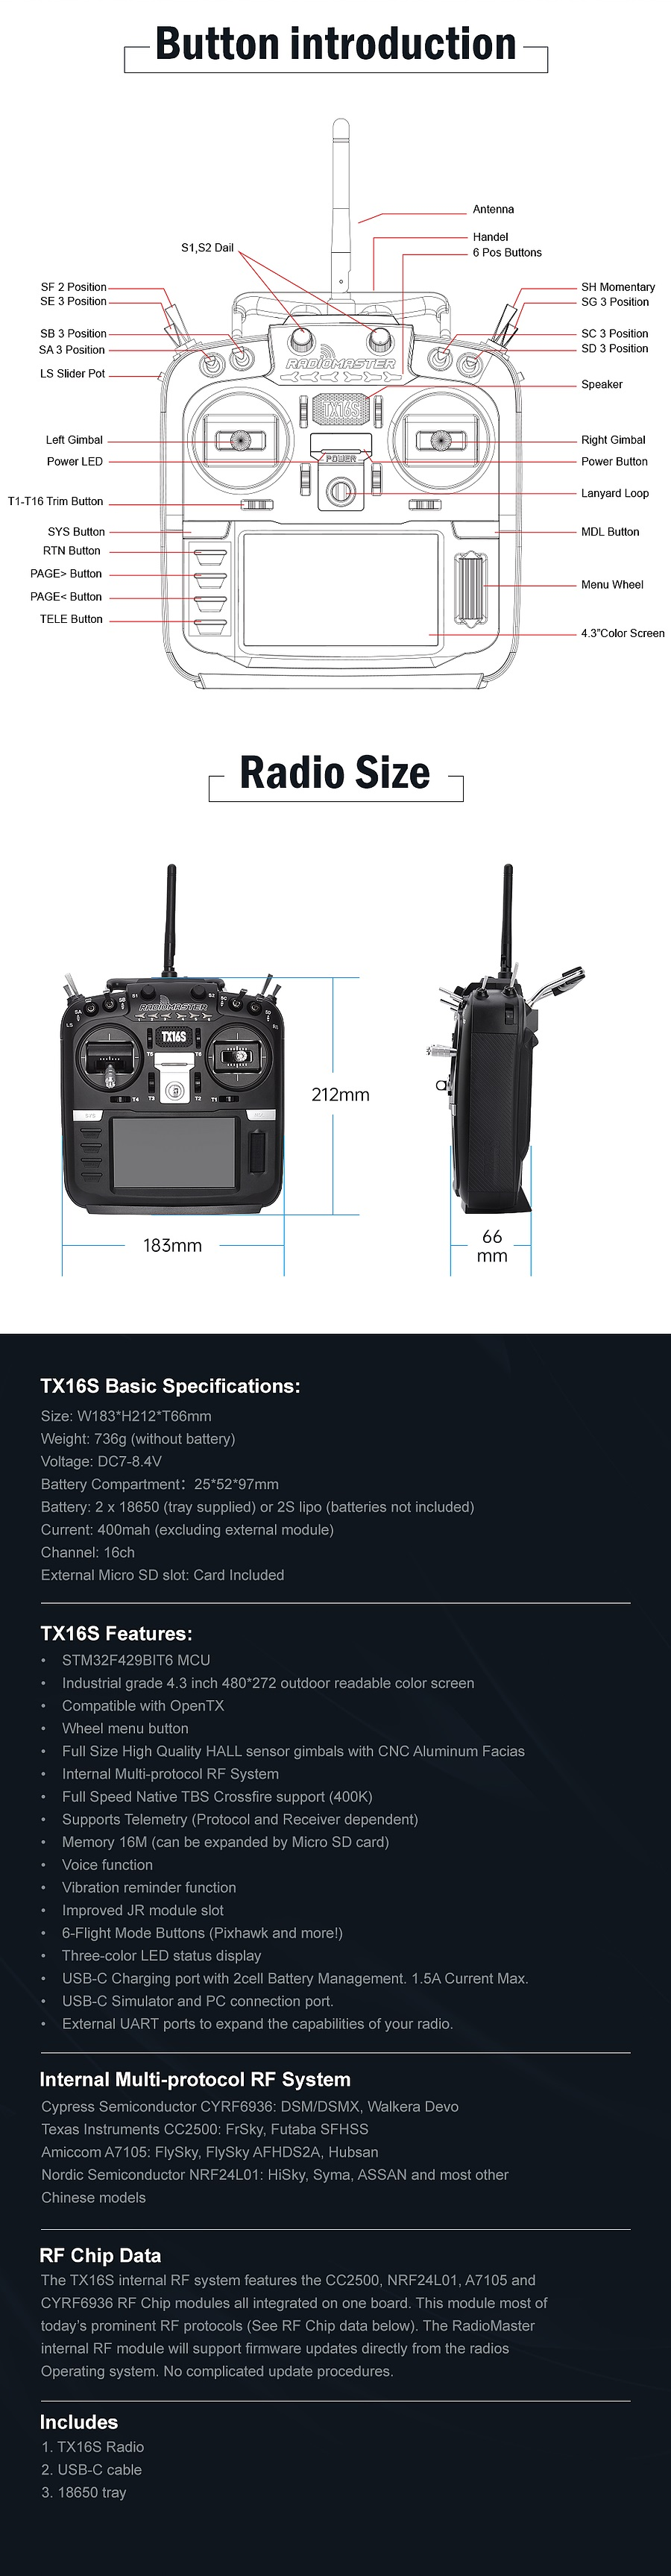 tx16s-page-c